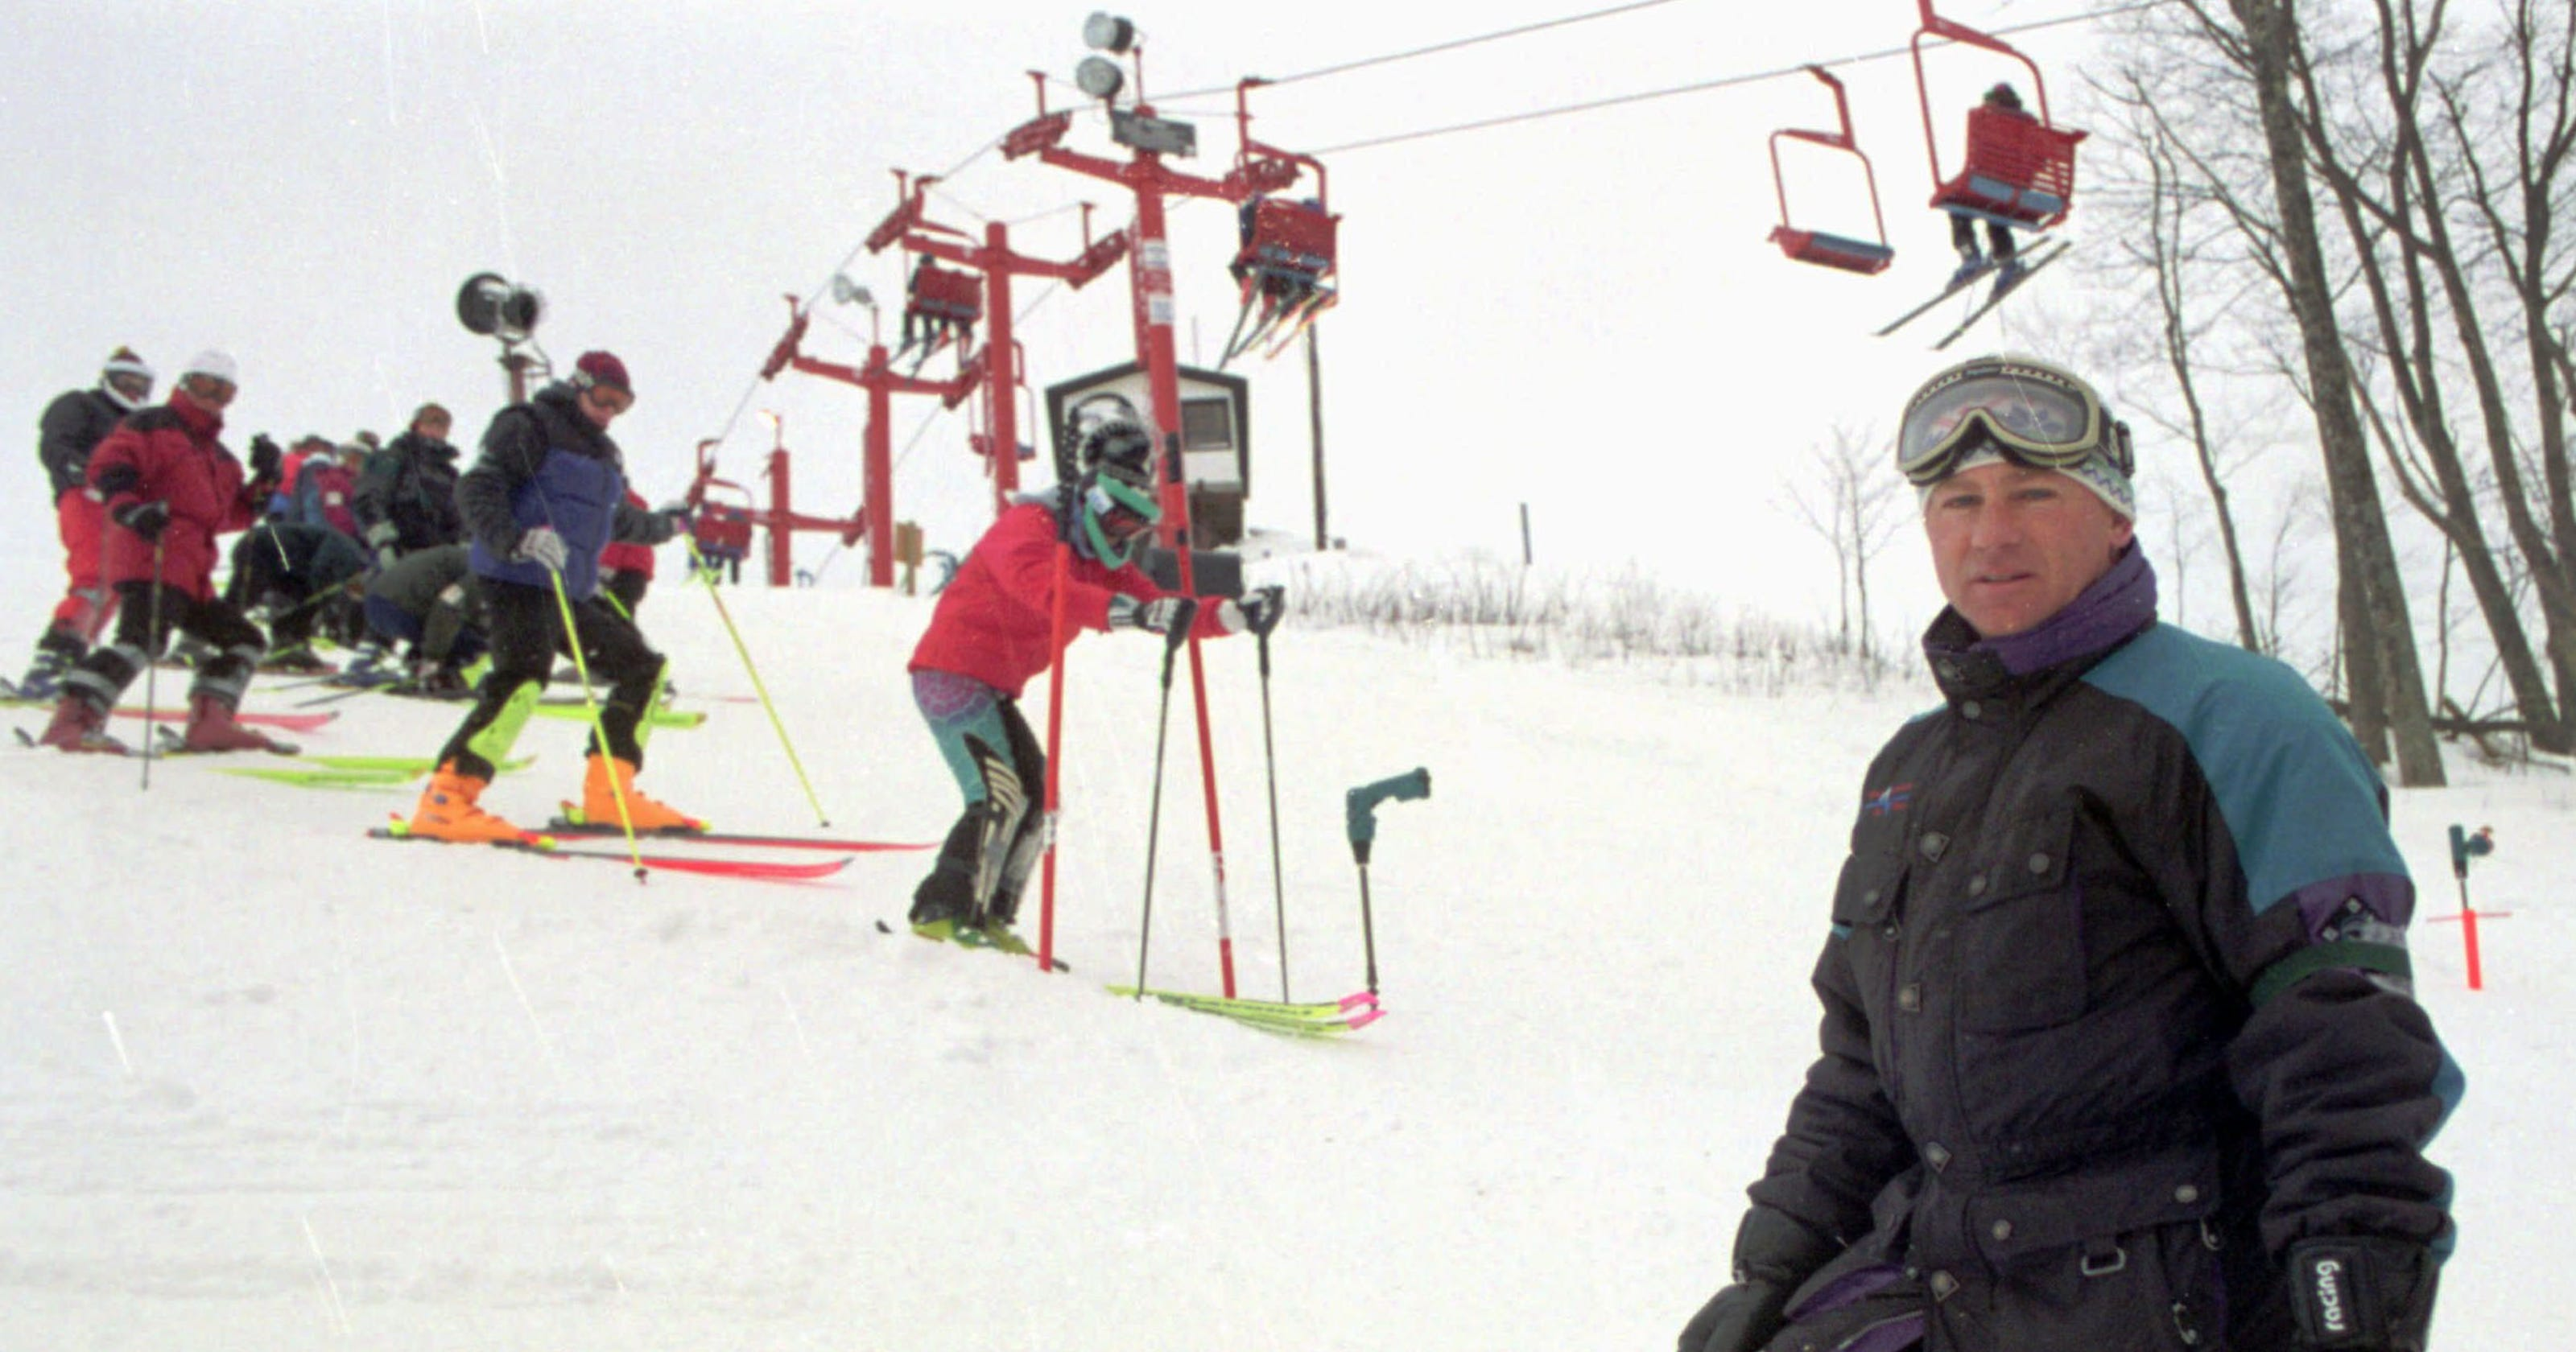 Top 10 Ski Resorts Areas In Michigan This Winter Mother Earth News Drill Press Survey Modern Homesteading